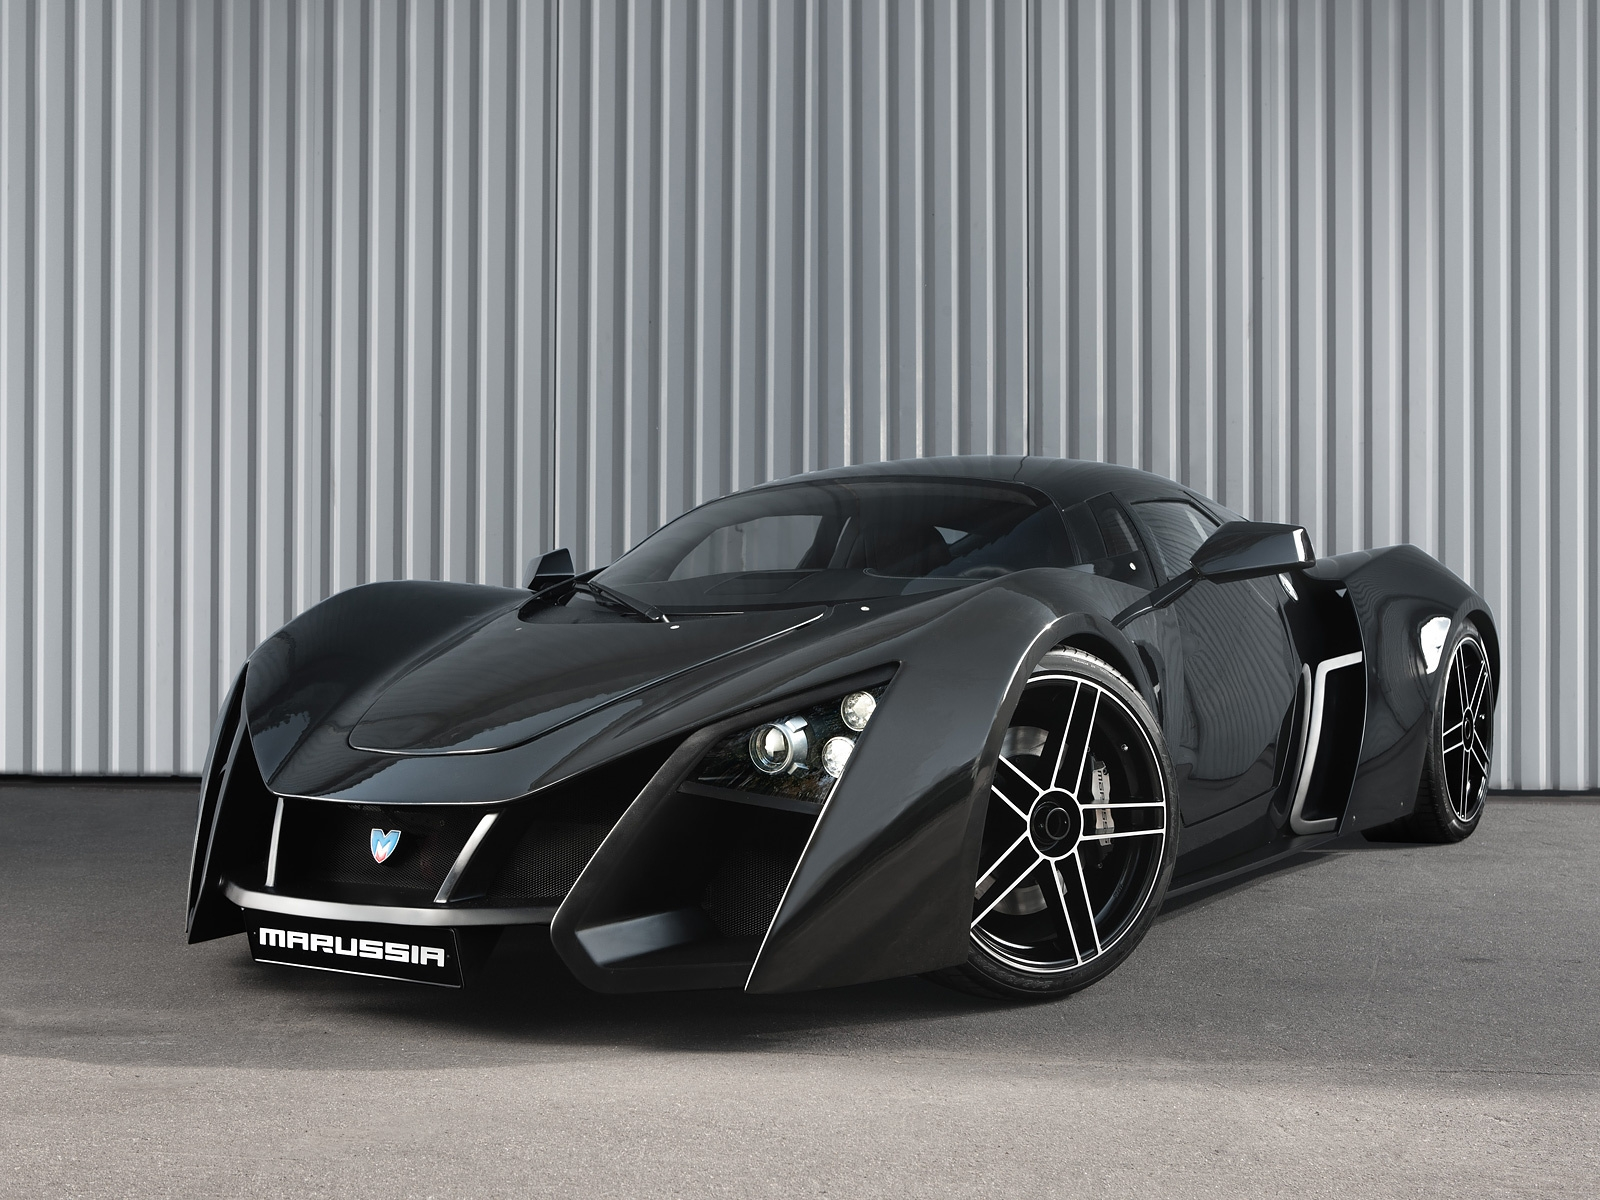 THE WORLDS FAMOUS CARS: MARUSSIA 5